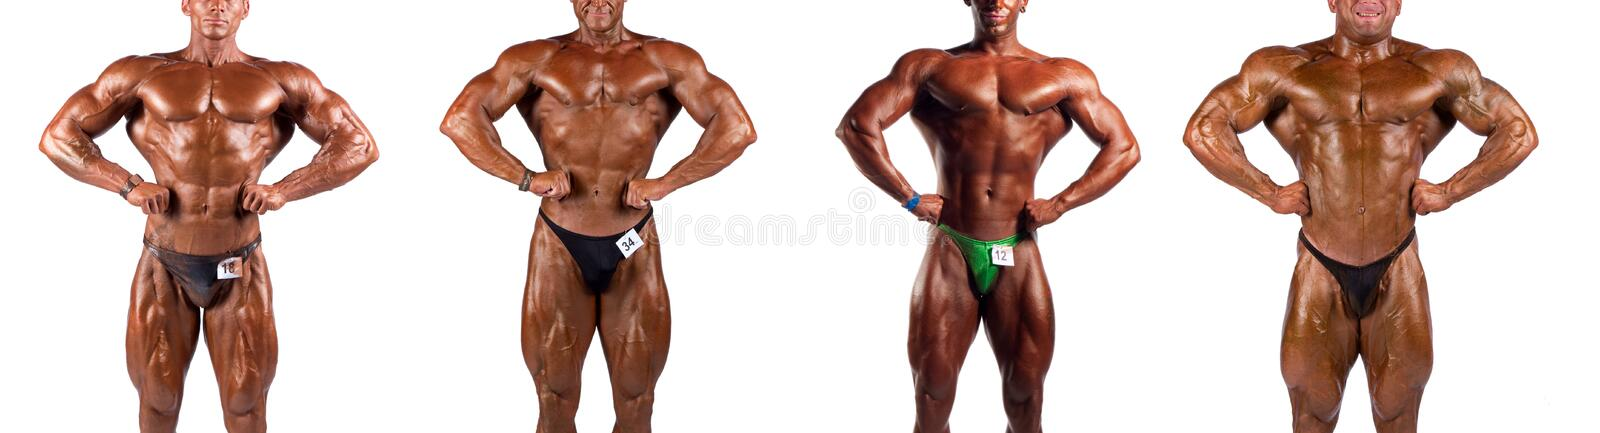 Fléchissement de Bodybuilders photos stock